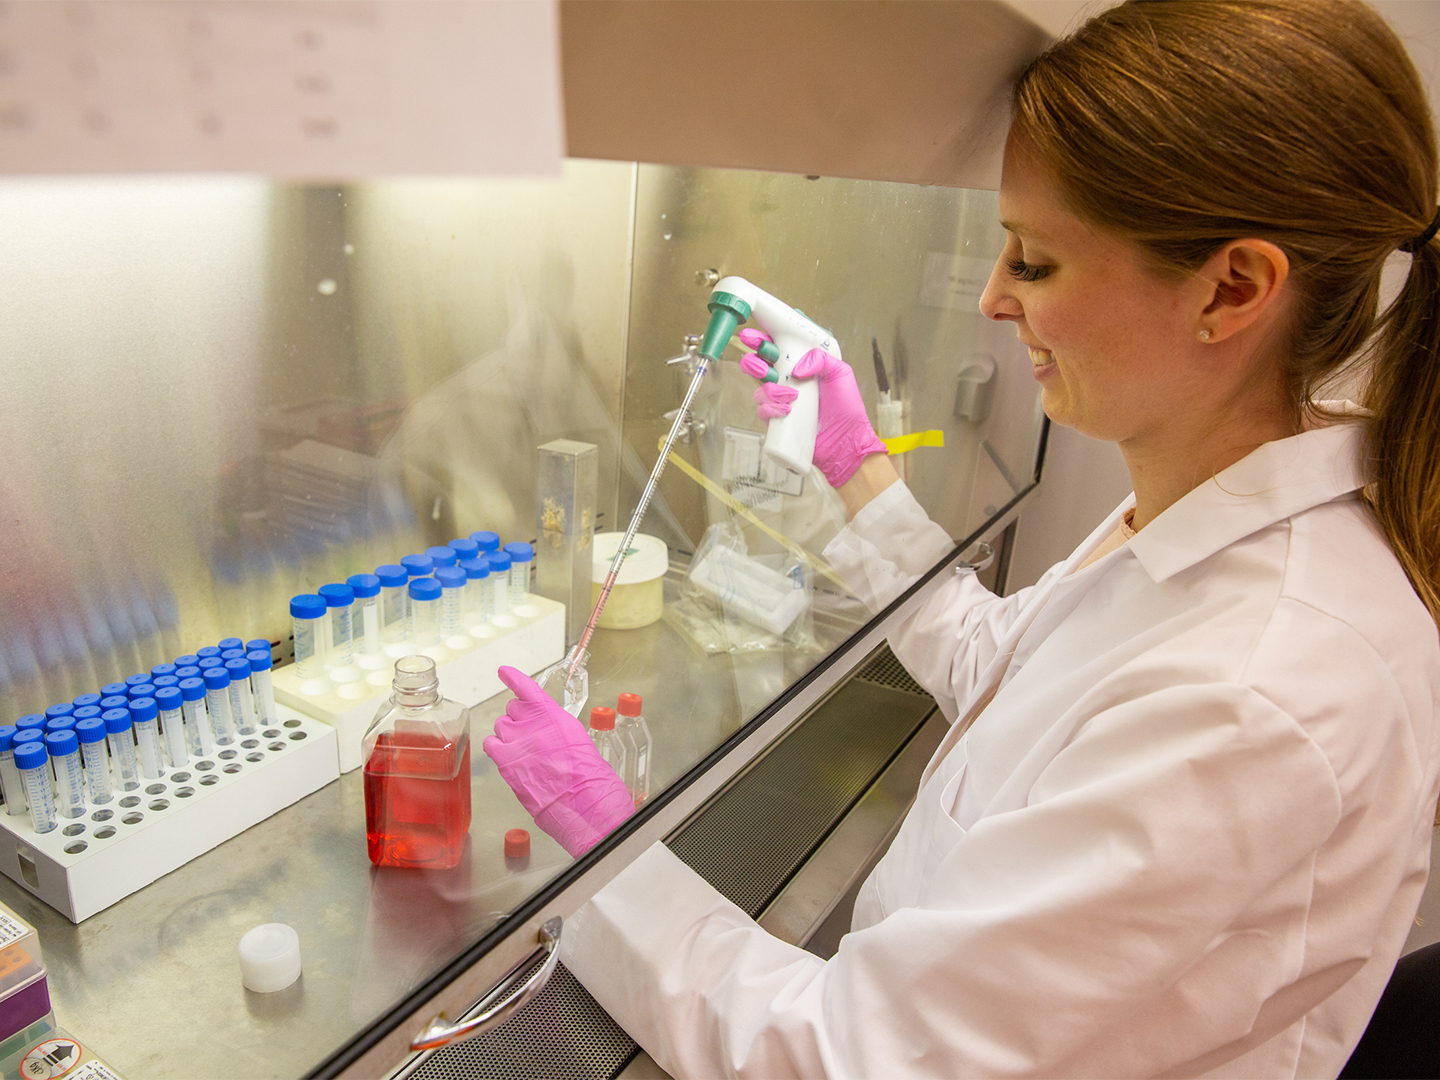 Researcher in a white coat pipetting in a lab